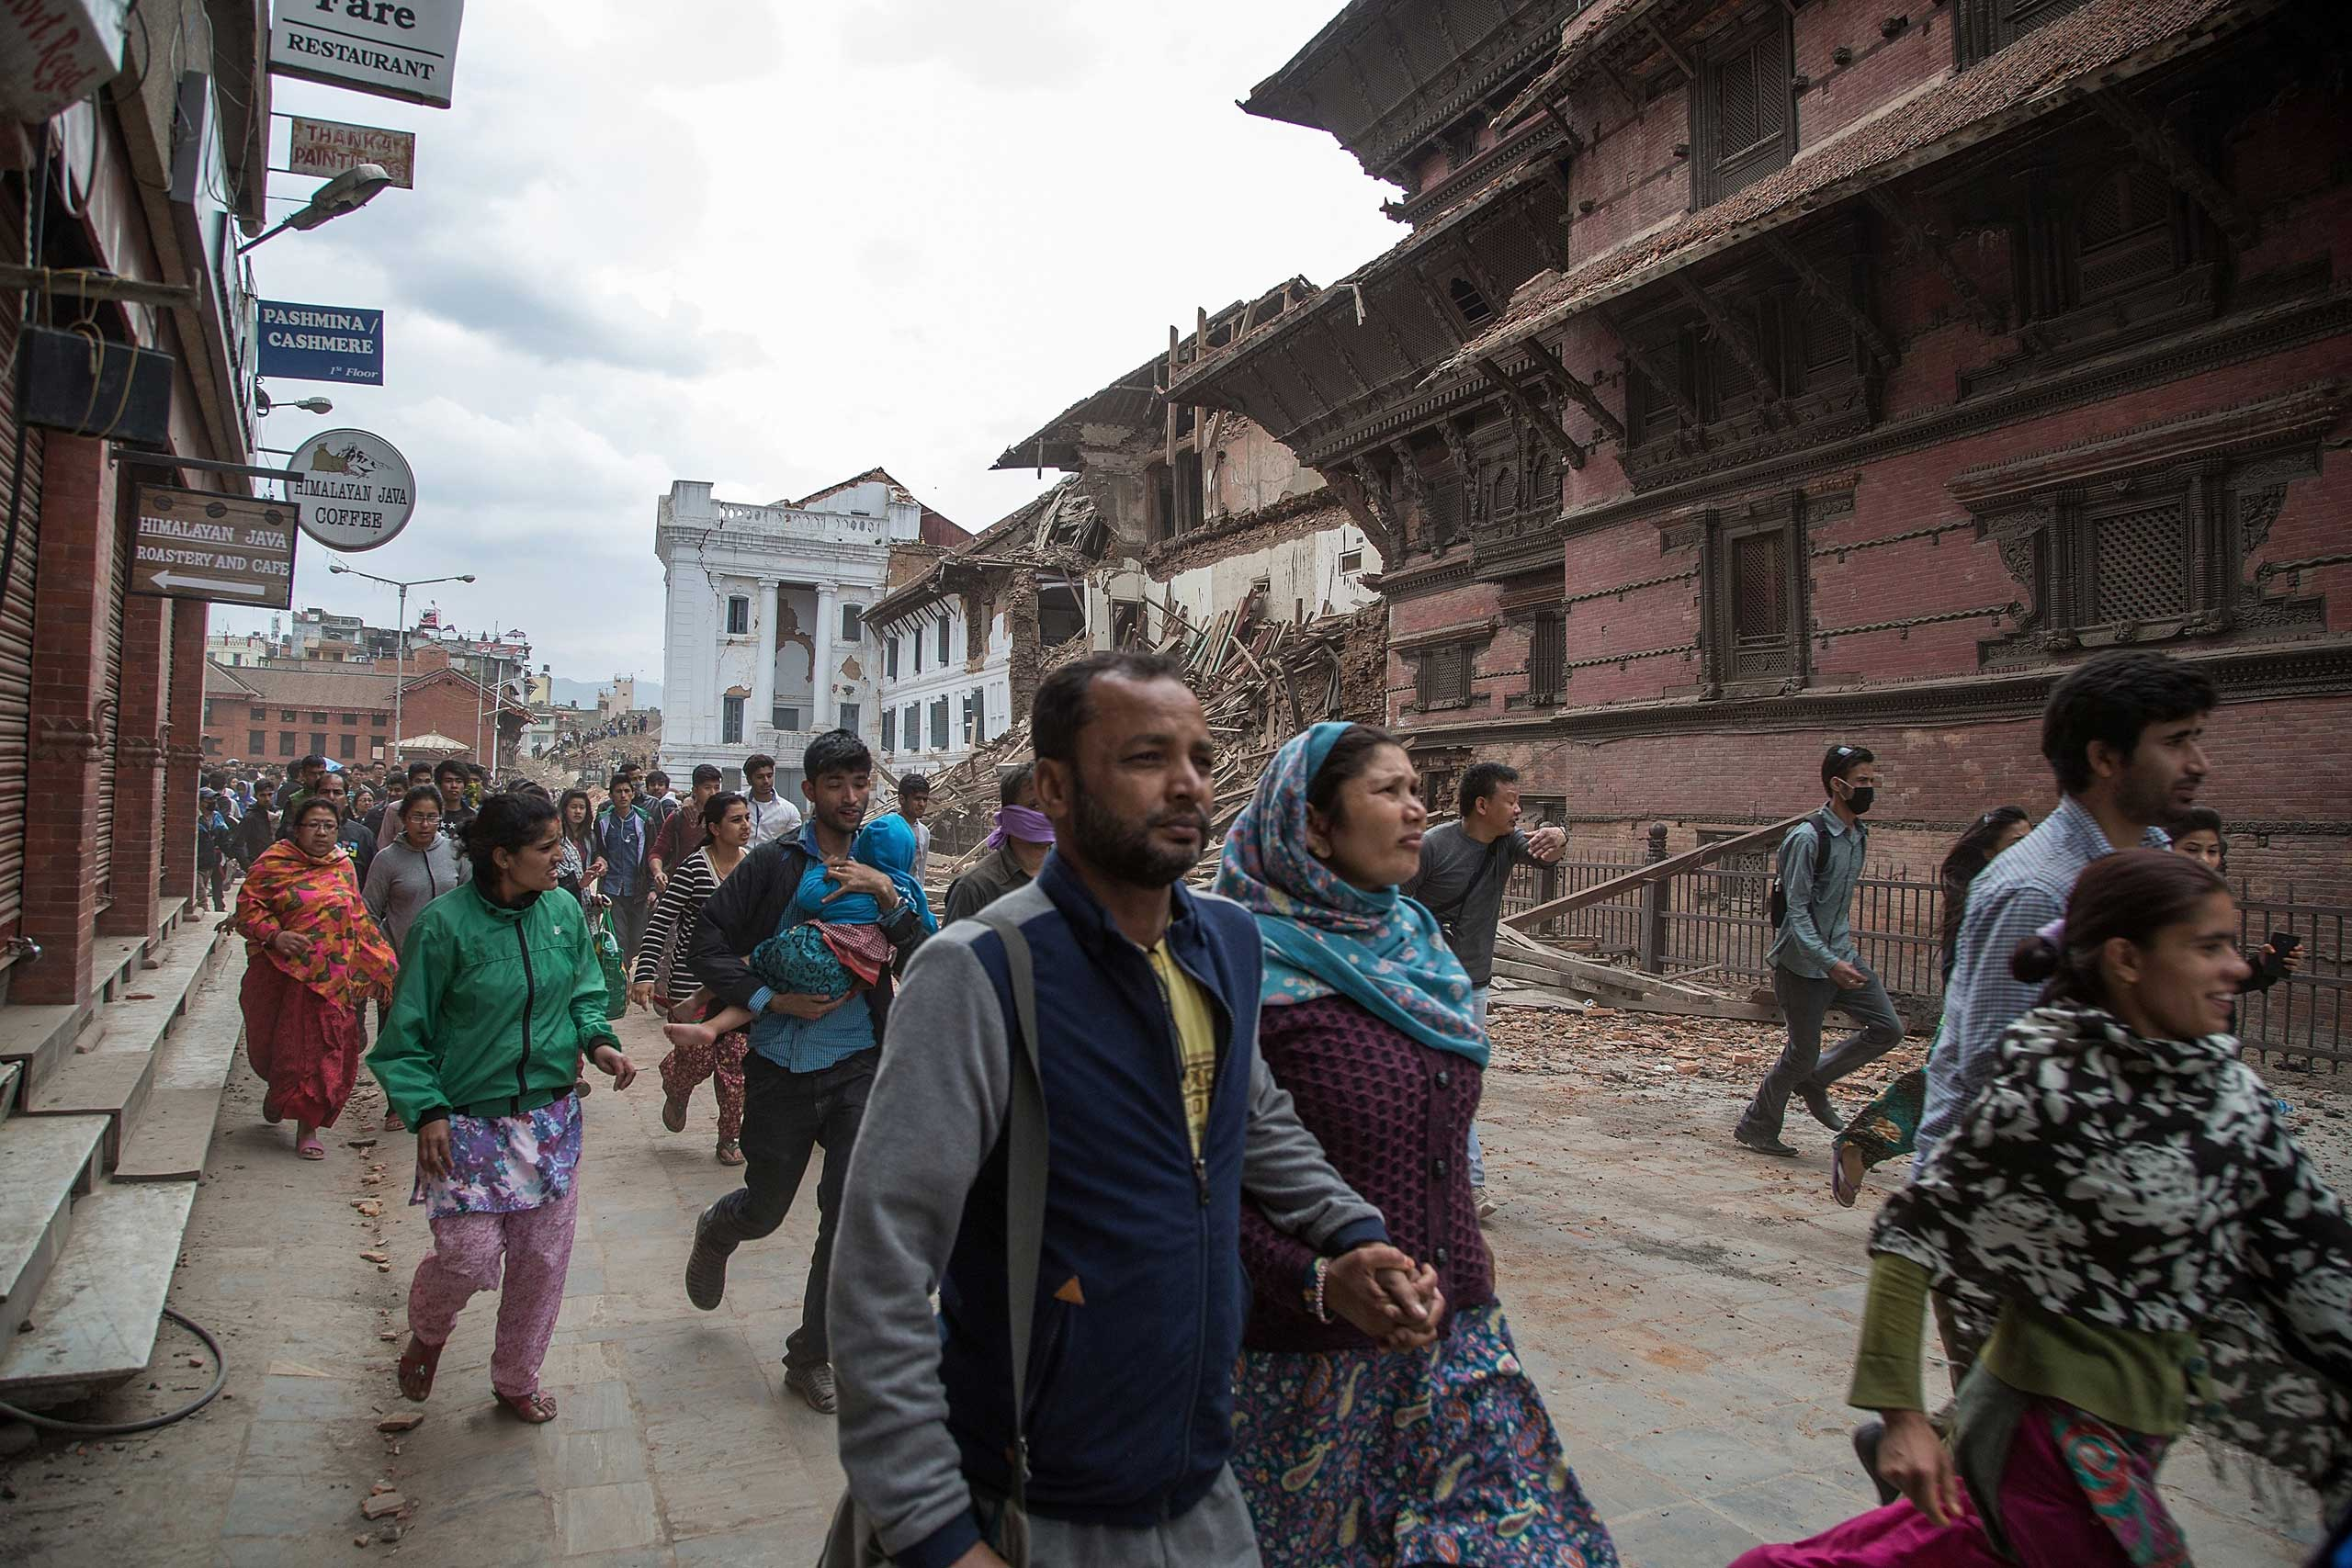 Kathmandu residents run to shelters after a replica tremor hit  the city.